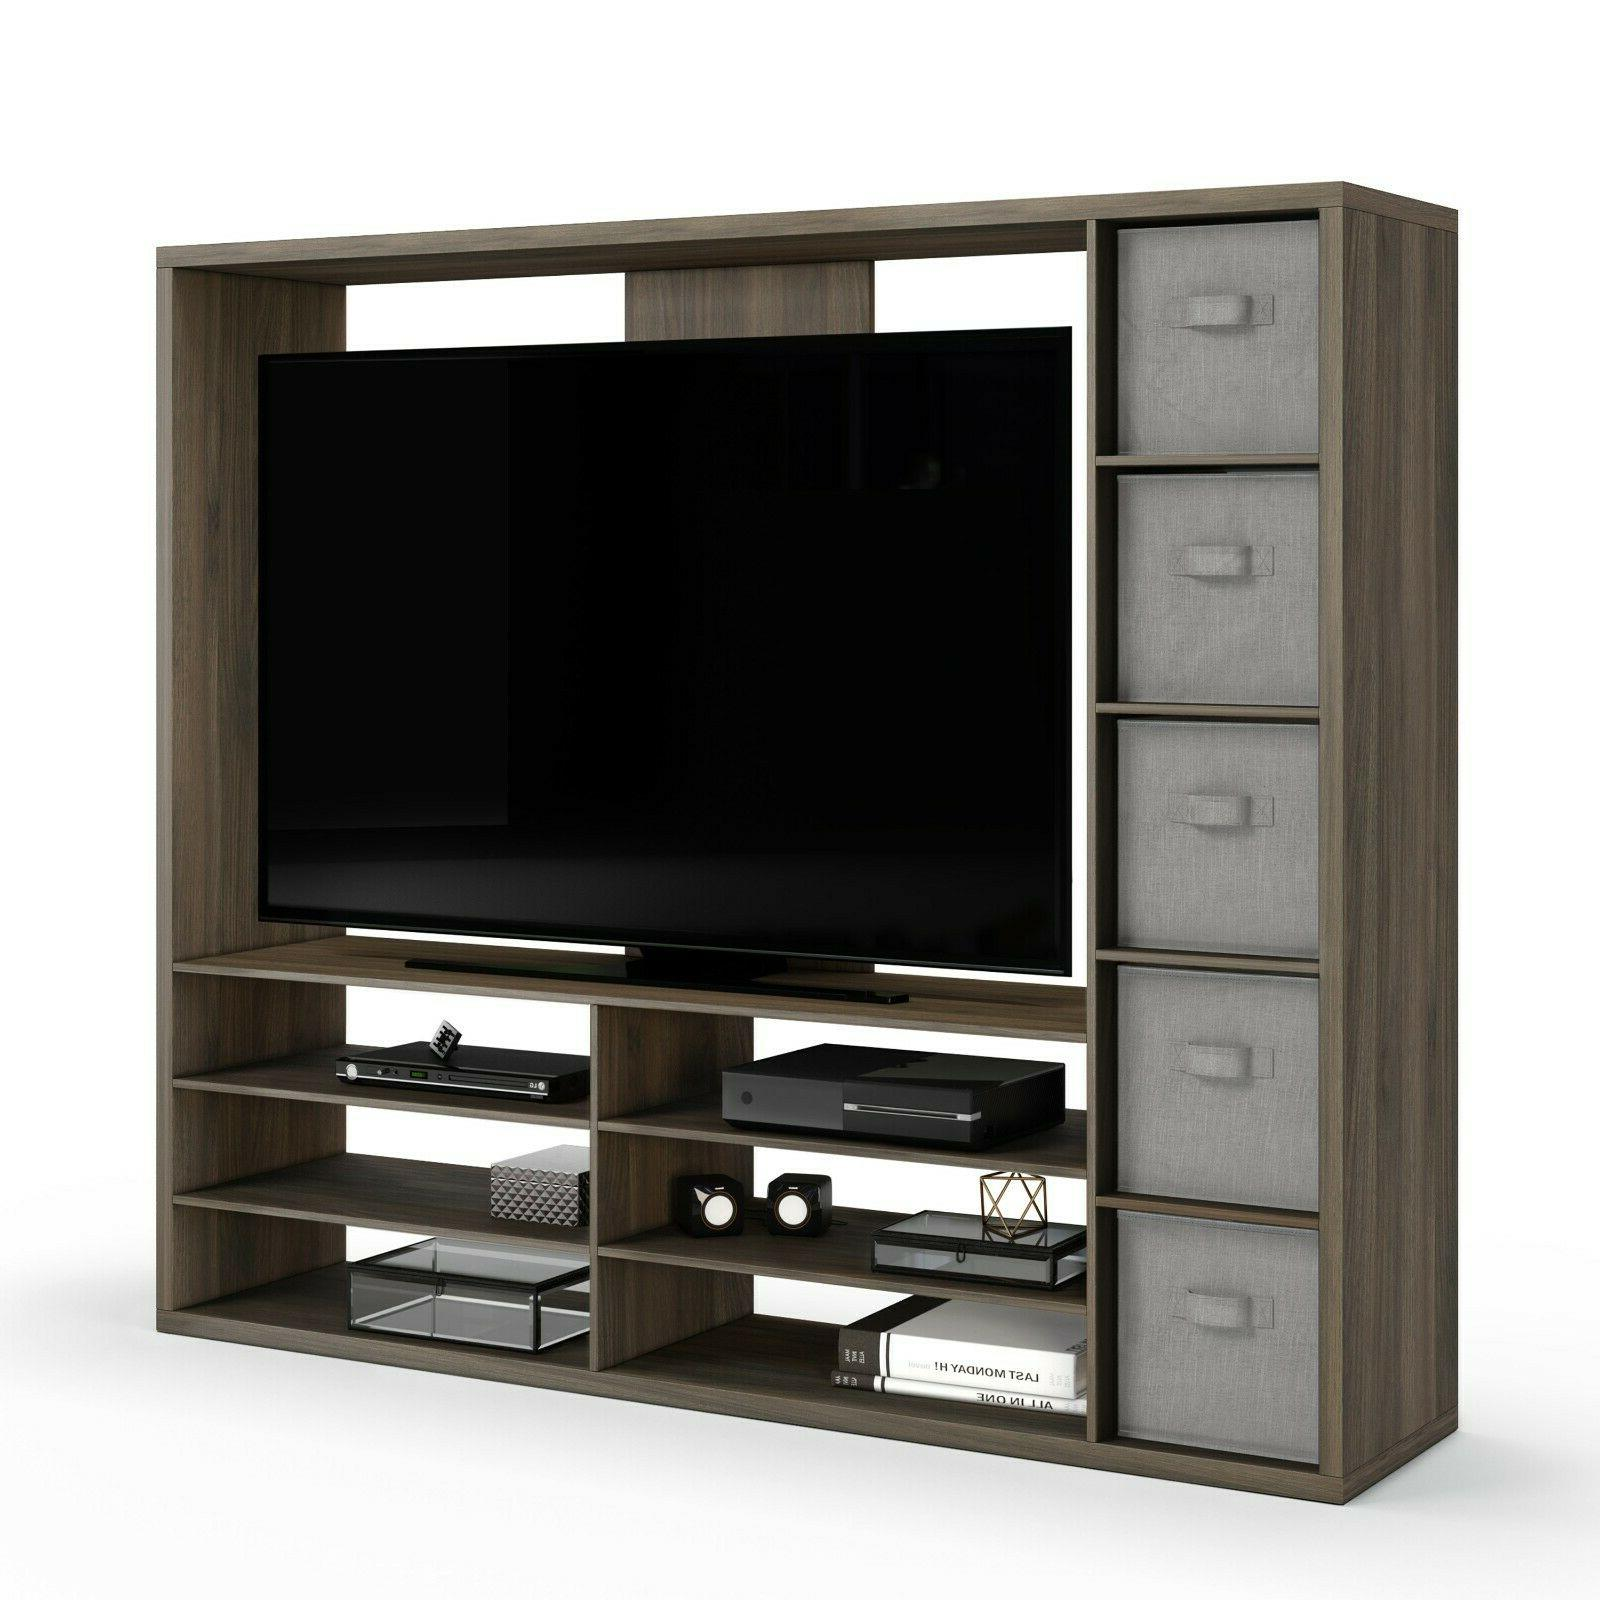 TV Stand Center Wall Unit Living Room Furniture Storage